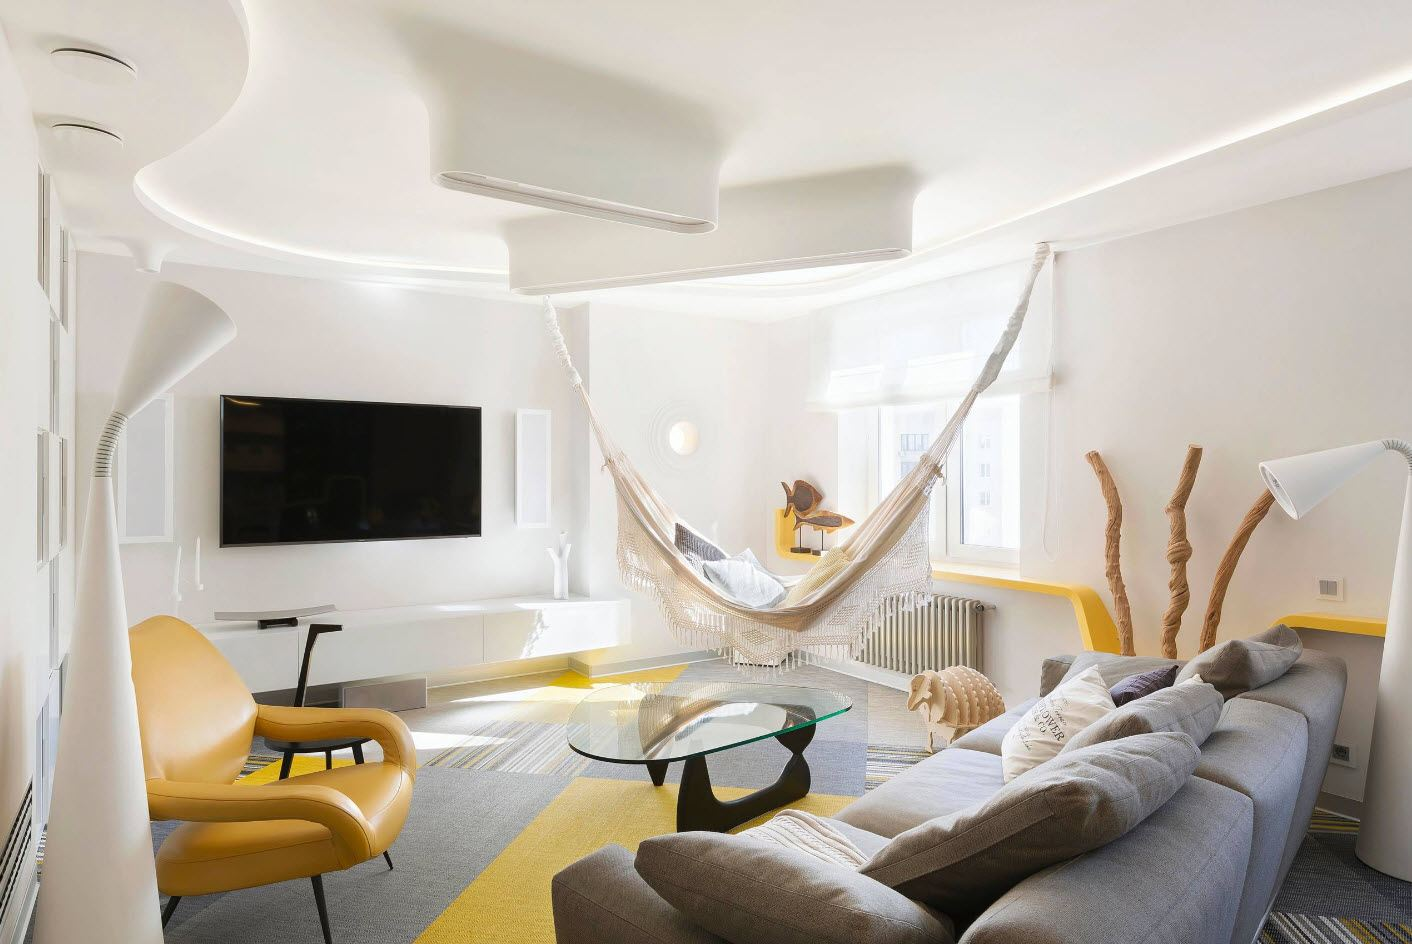 White Living Room: Different Style Interiors with Photos. Yellow accents at the modern living